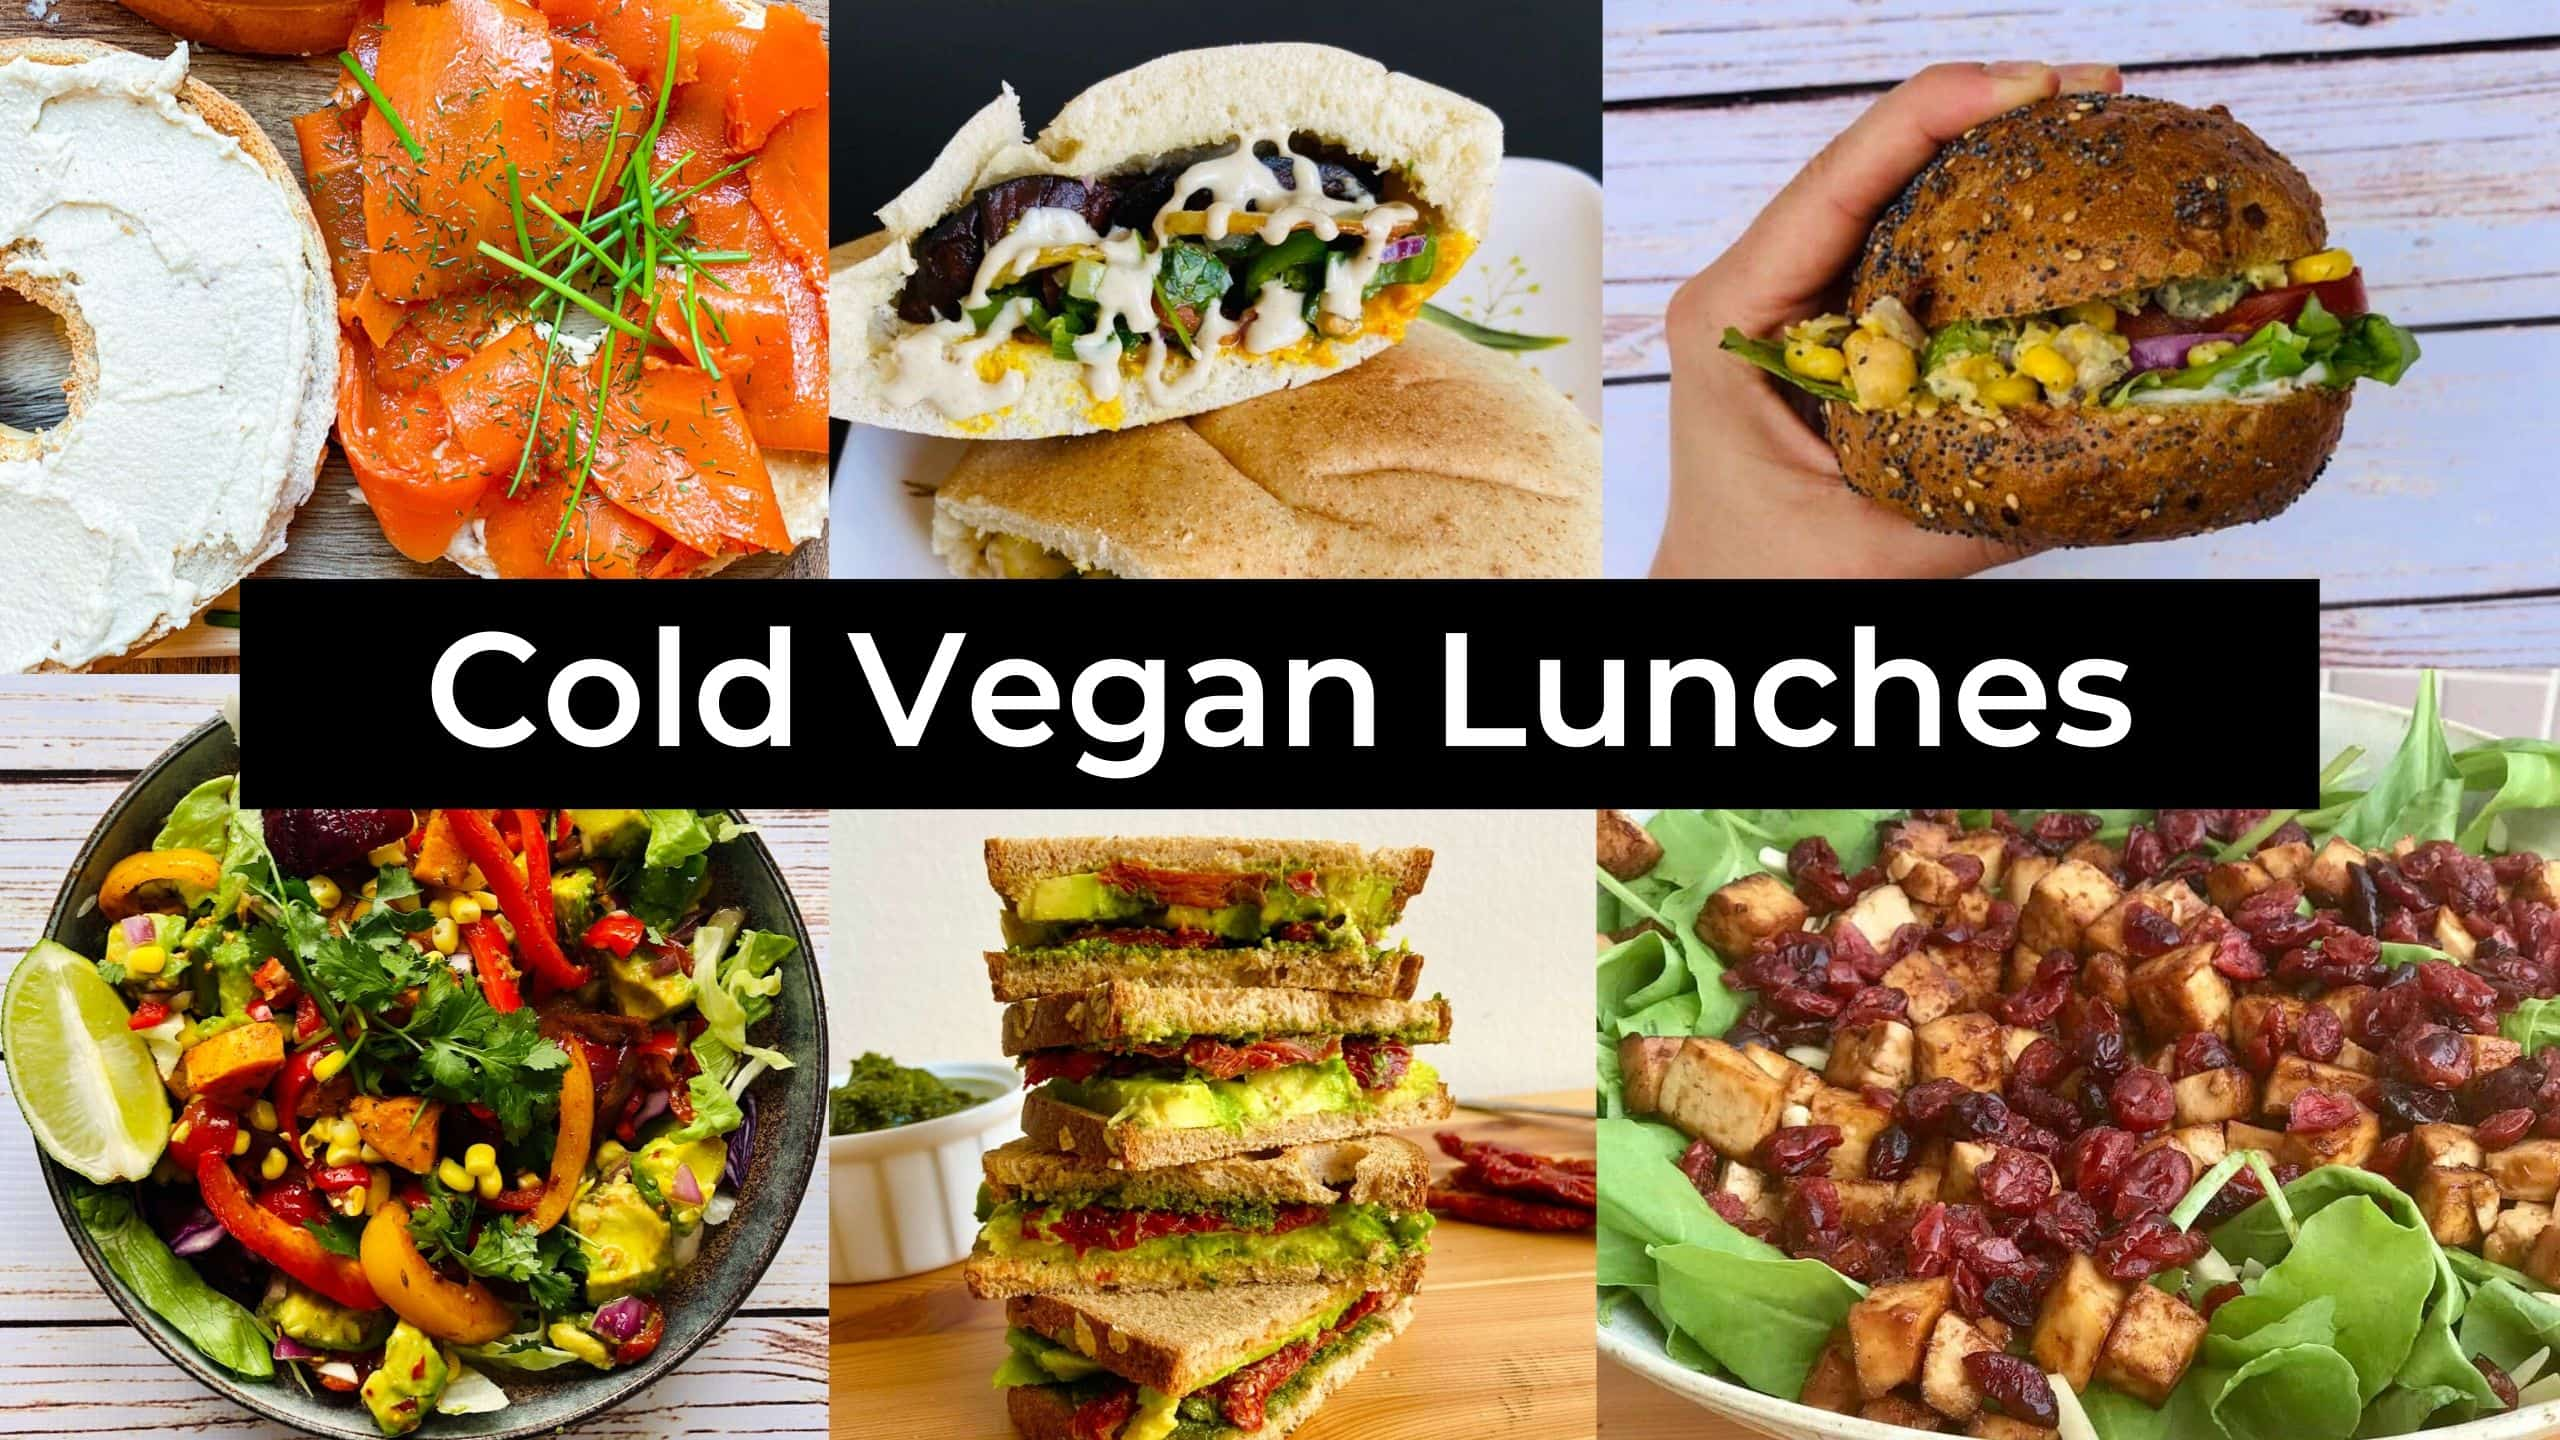 Cold Vegan Lunches For School, Work, Camping and More